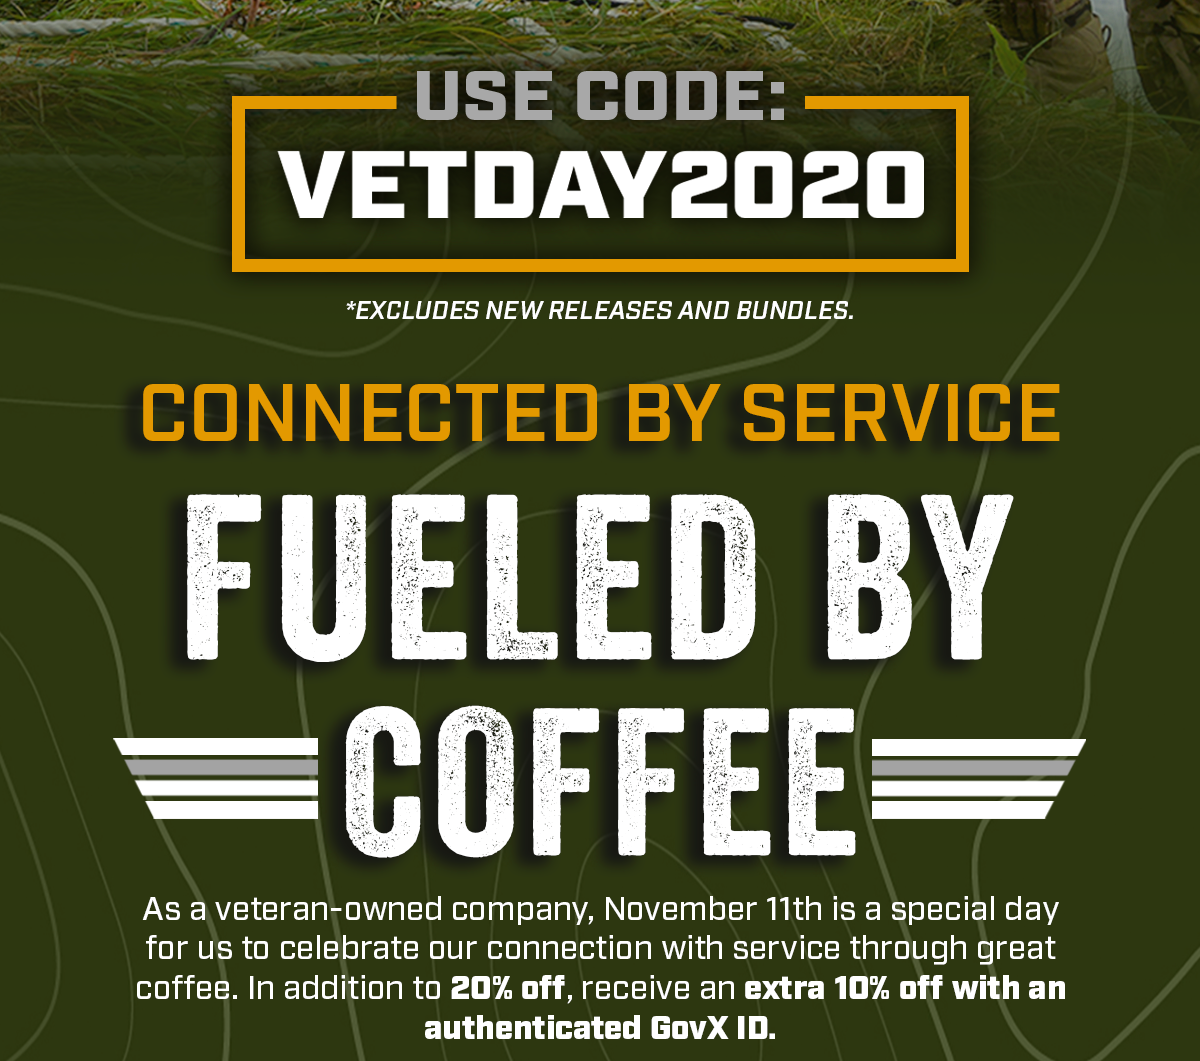 Use Code: VETDAY2020